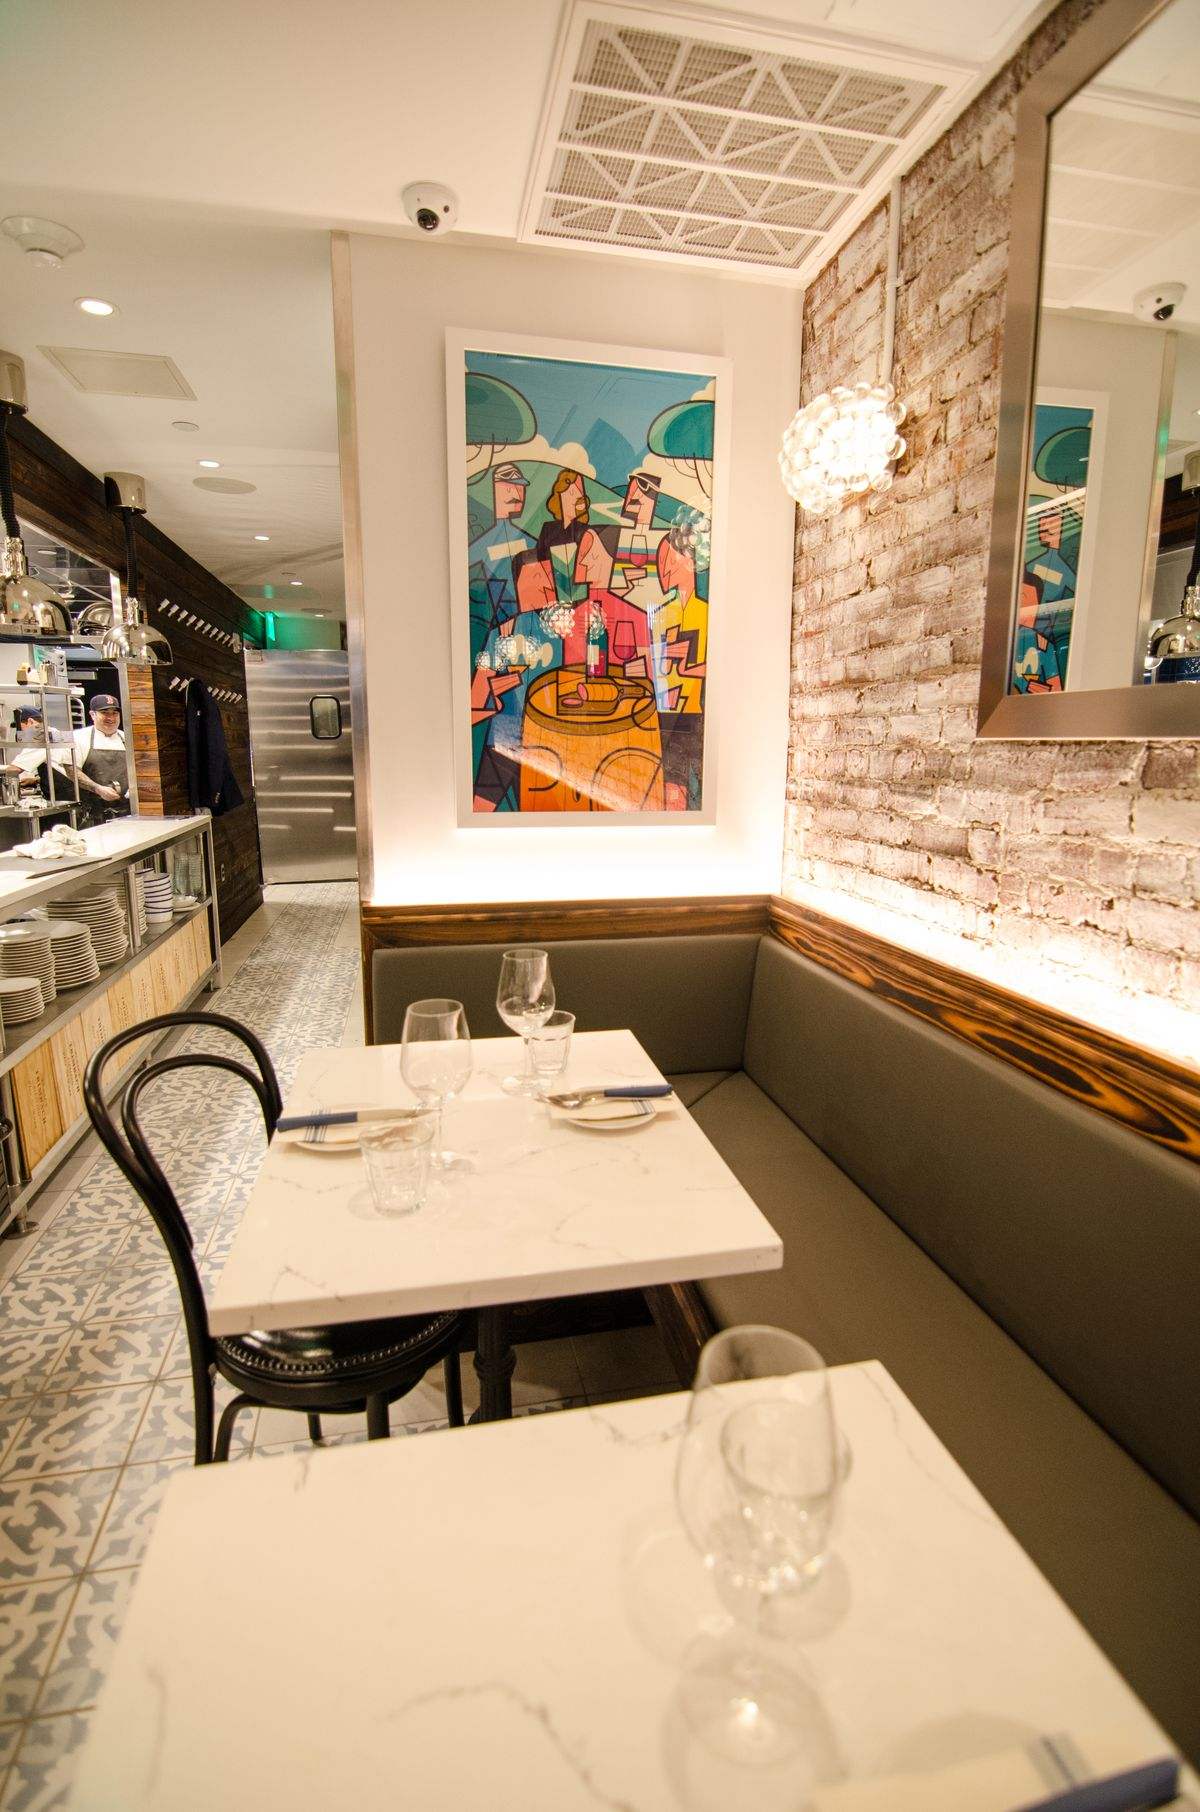 Closeup of a colorful piece of artwork inside a restaurant with white marble tables and a Spanish-style tiled floor